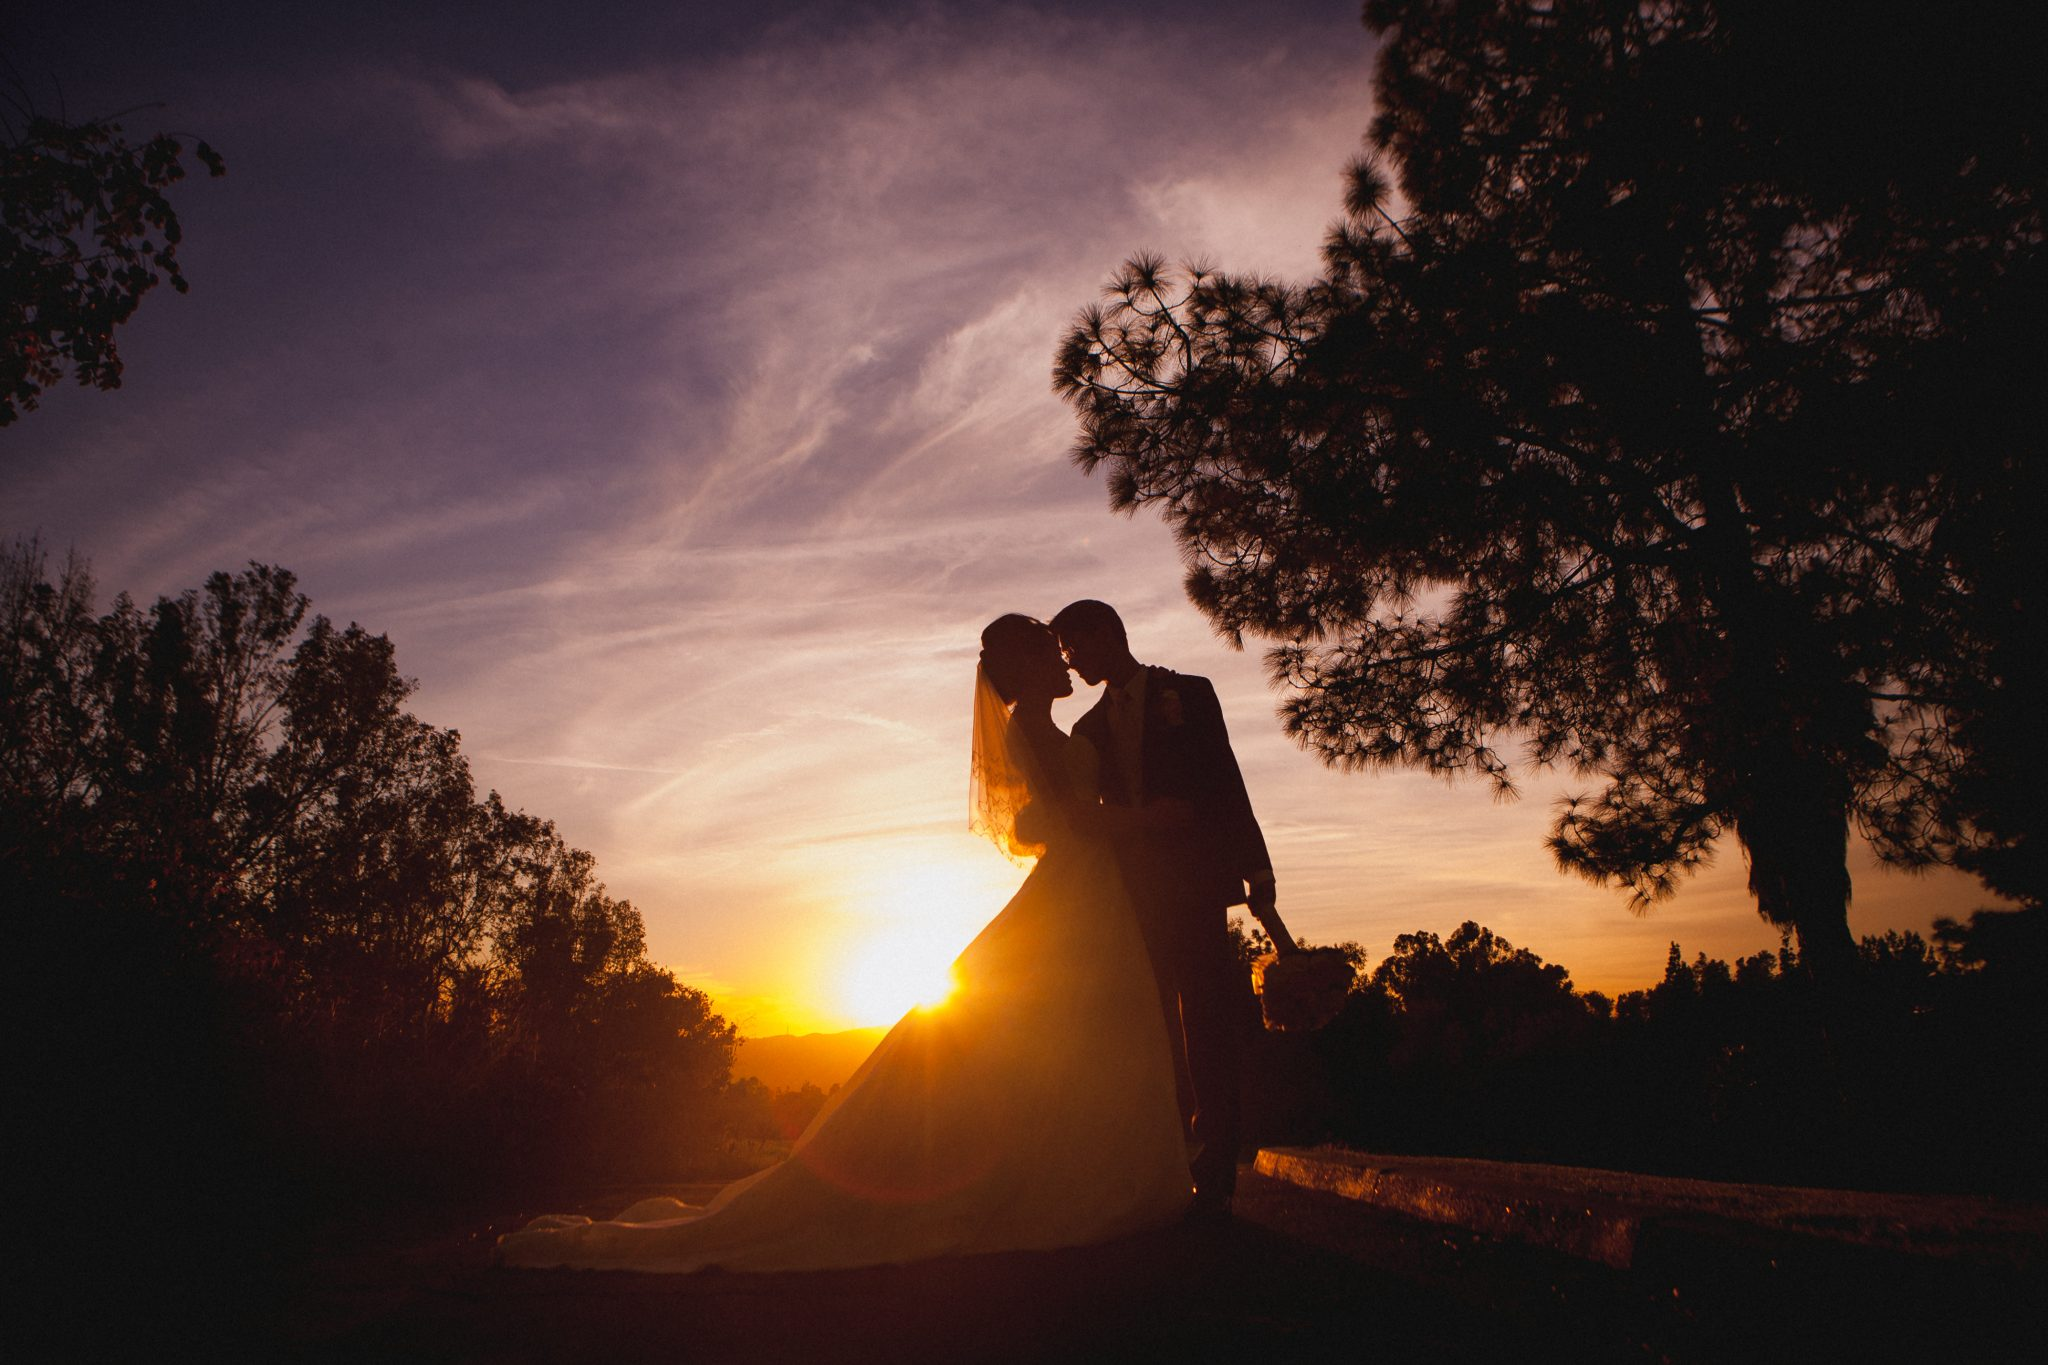 Silhouette of a bride and groom with colorful sunset